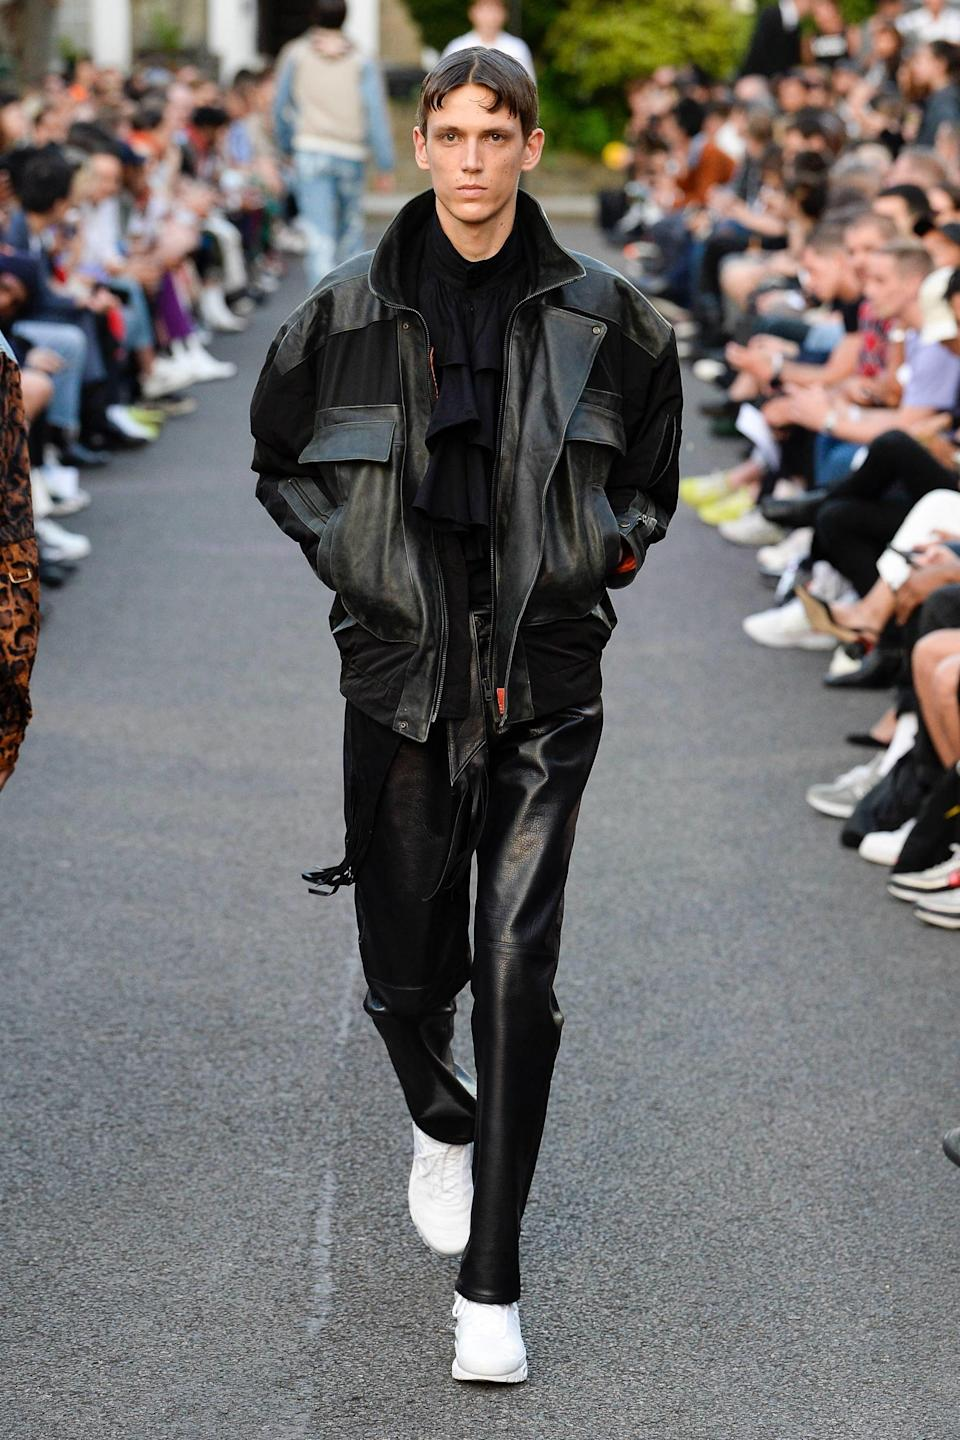 Nowhere is the schism between the highs and the lows of fashion more evident than in menswear. Here are the nine trends, from couture to street, that will dominate the Spring 2019 season.